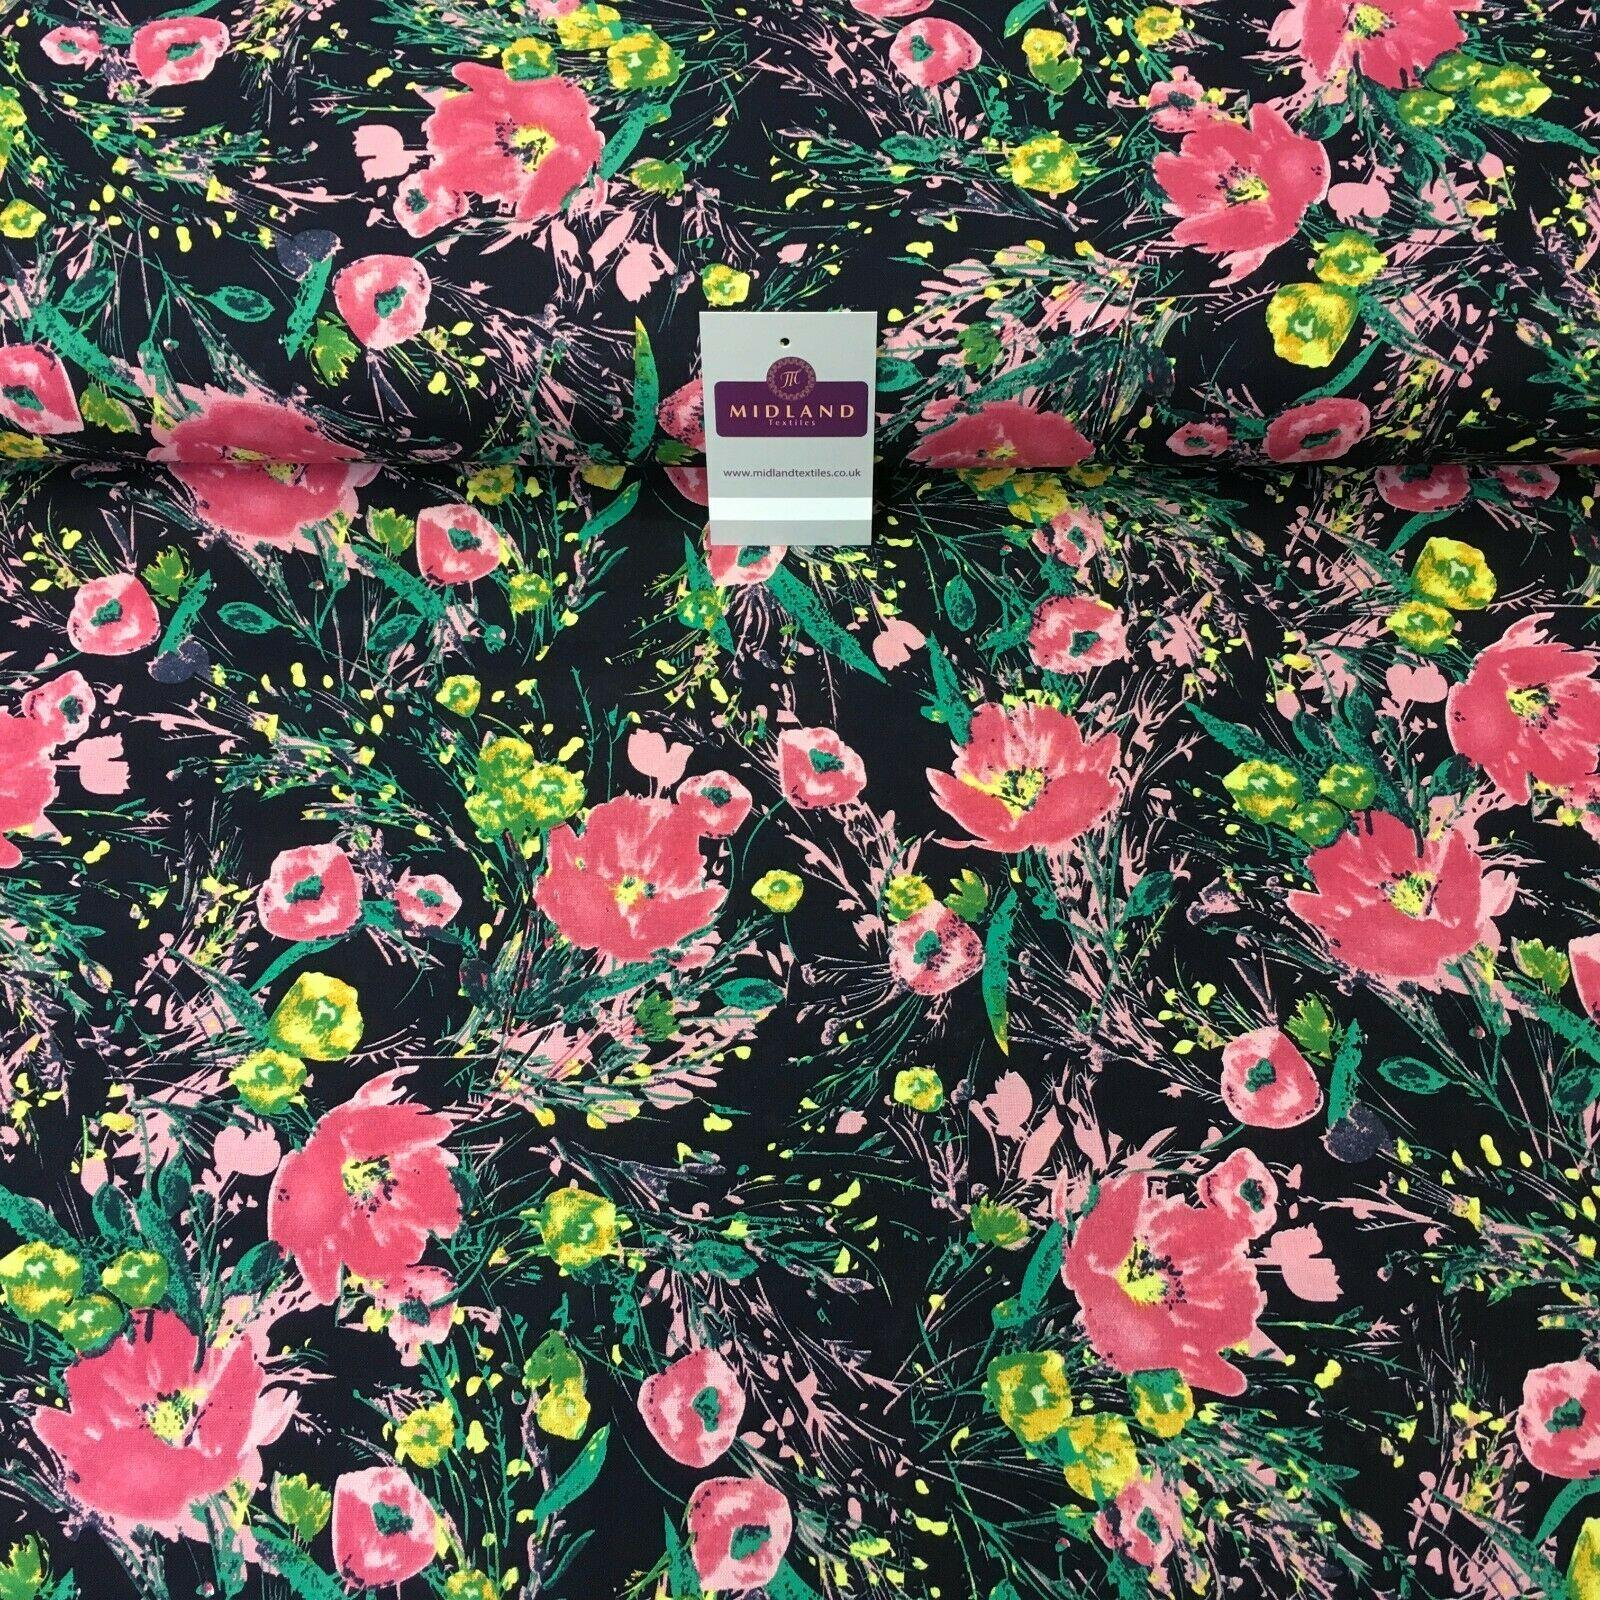 Navy Pink Floral Printed Cotton Linen Dress Fabric 150cm Wide MK1086-13